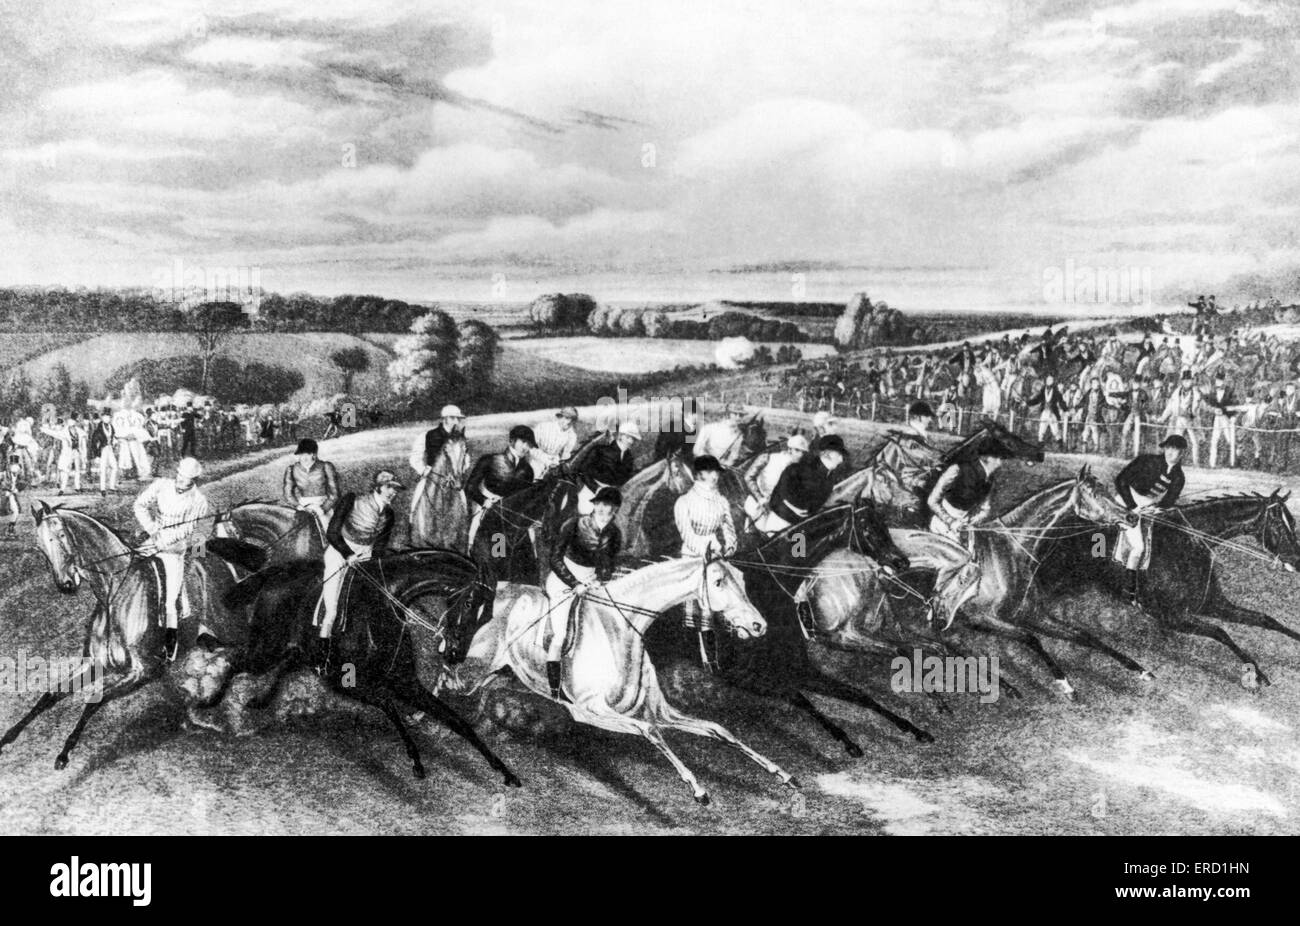 Horseracing Illustration- the start of the Derby race, 1837. Stock Photo